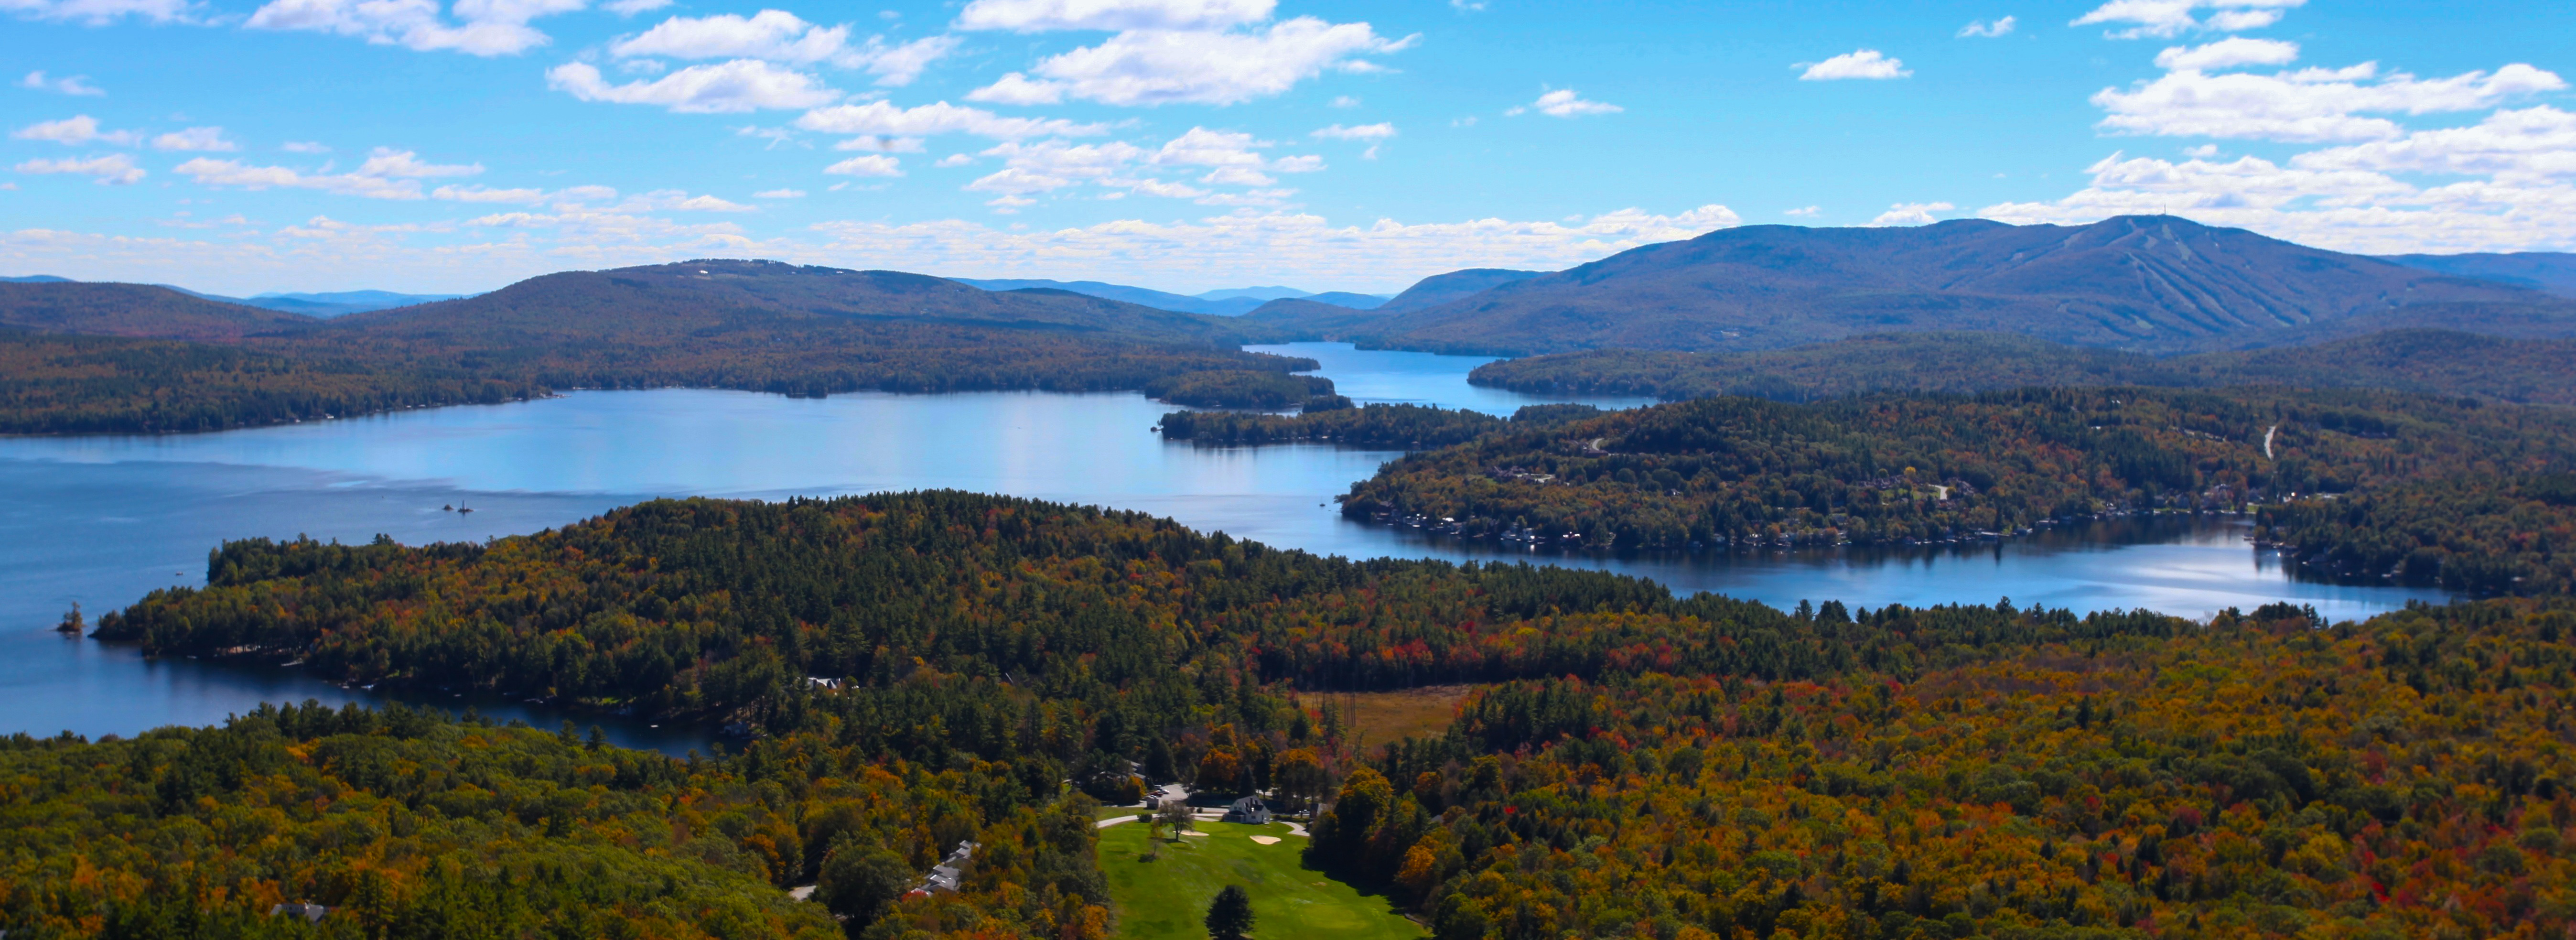 Granliden - Lake Sunapee - Pam Perkins Real Estate